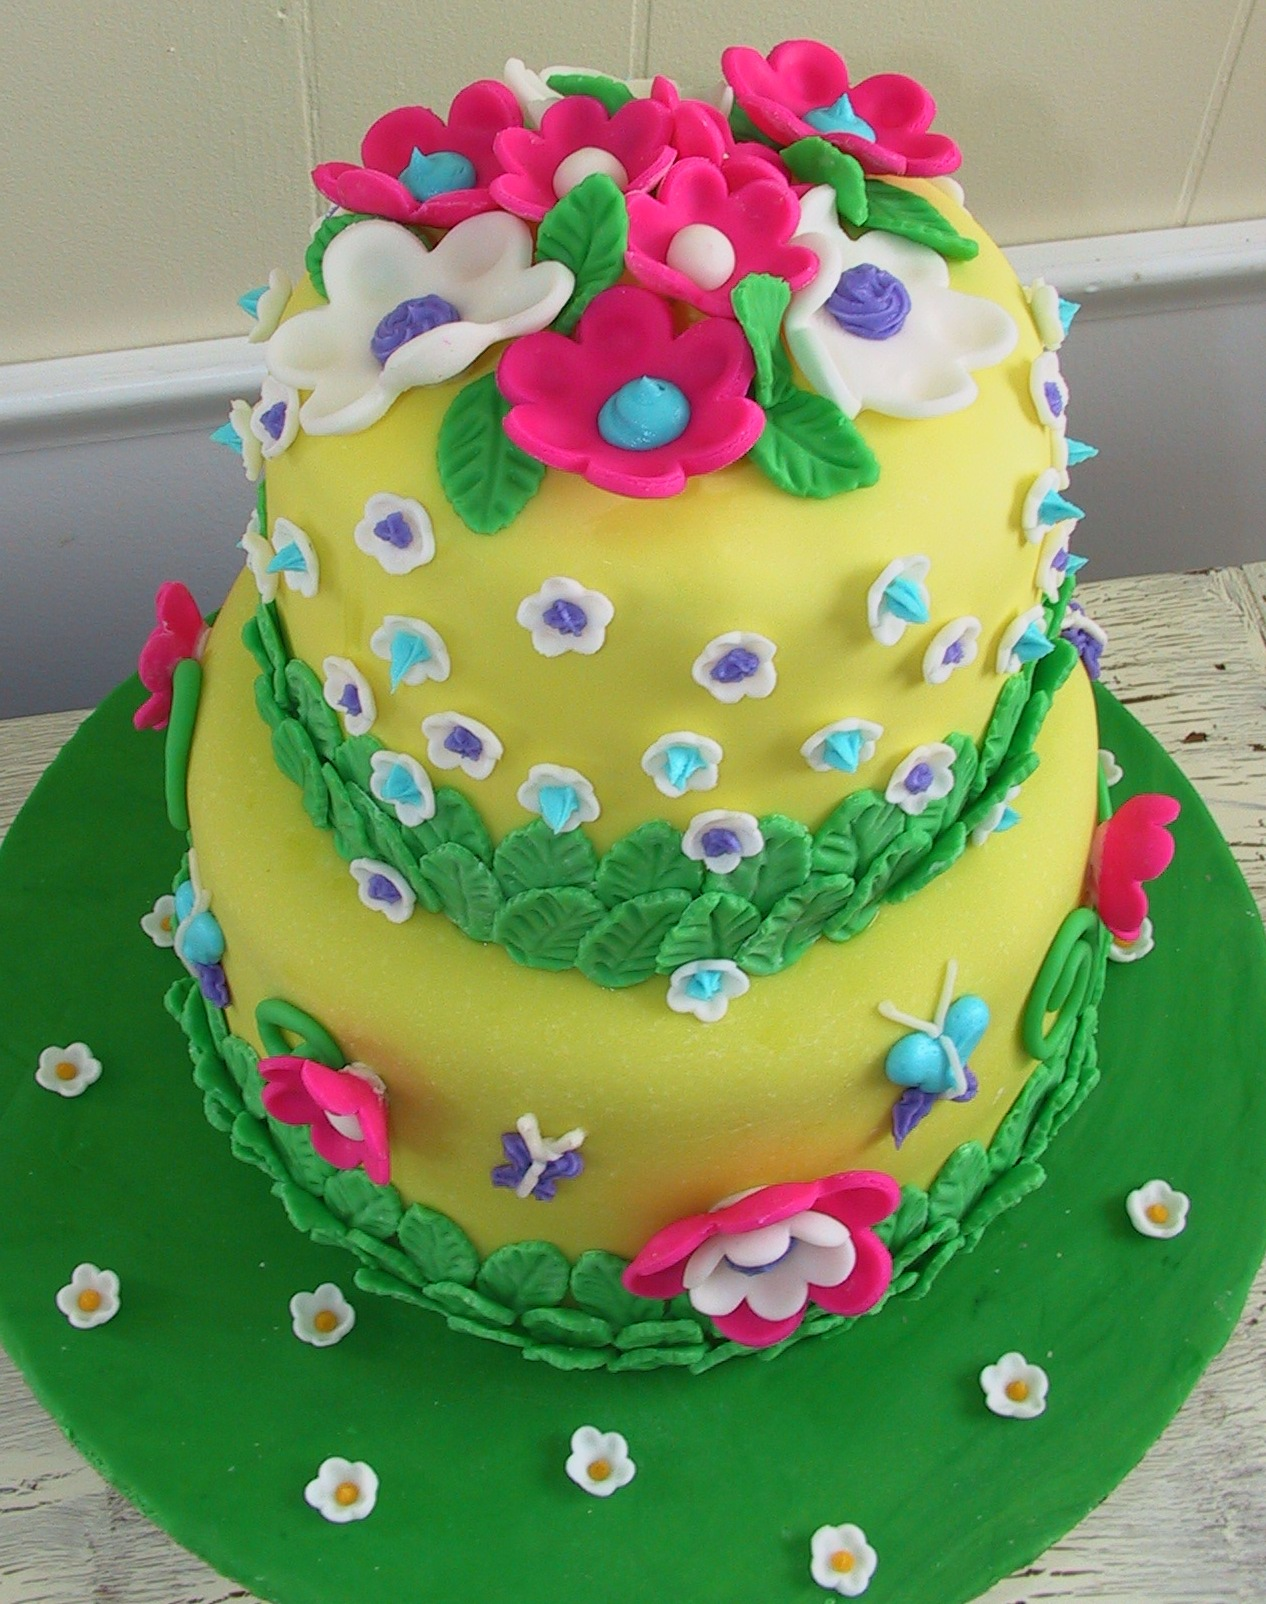 Flower cakes decoration ideas little birthday cakes flower cakes izmirmasajfo